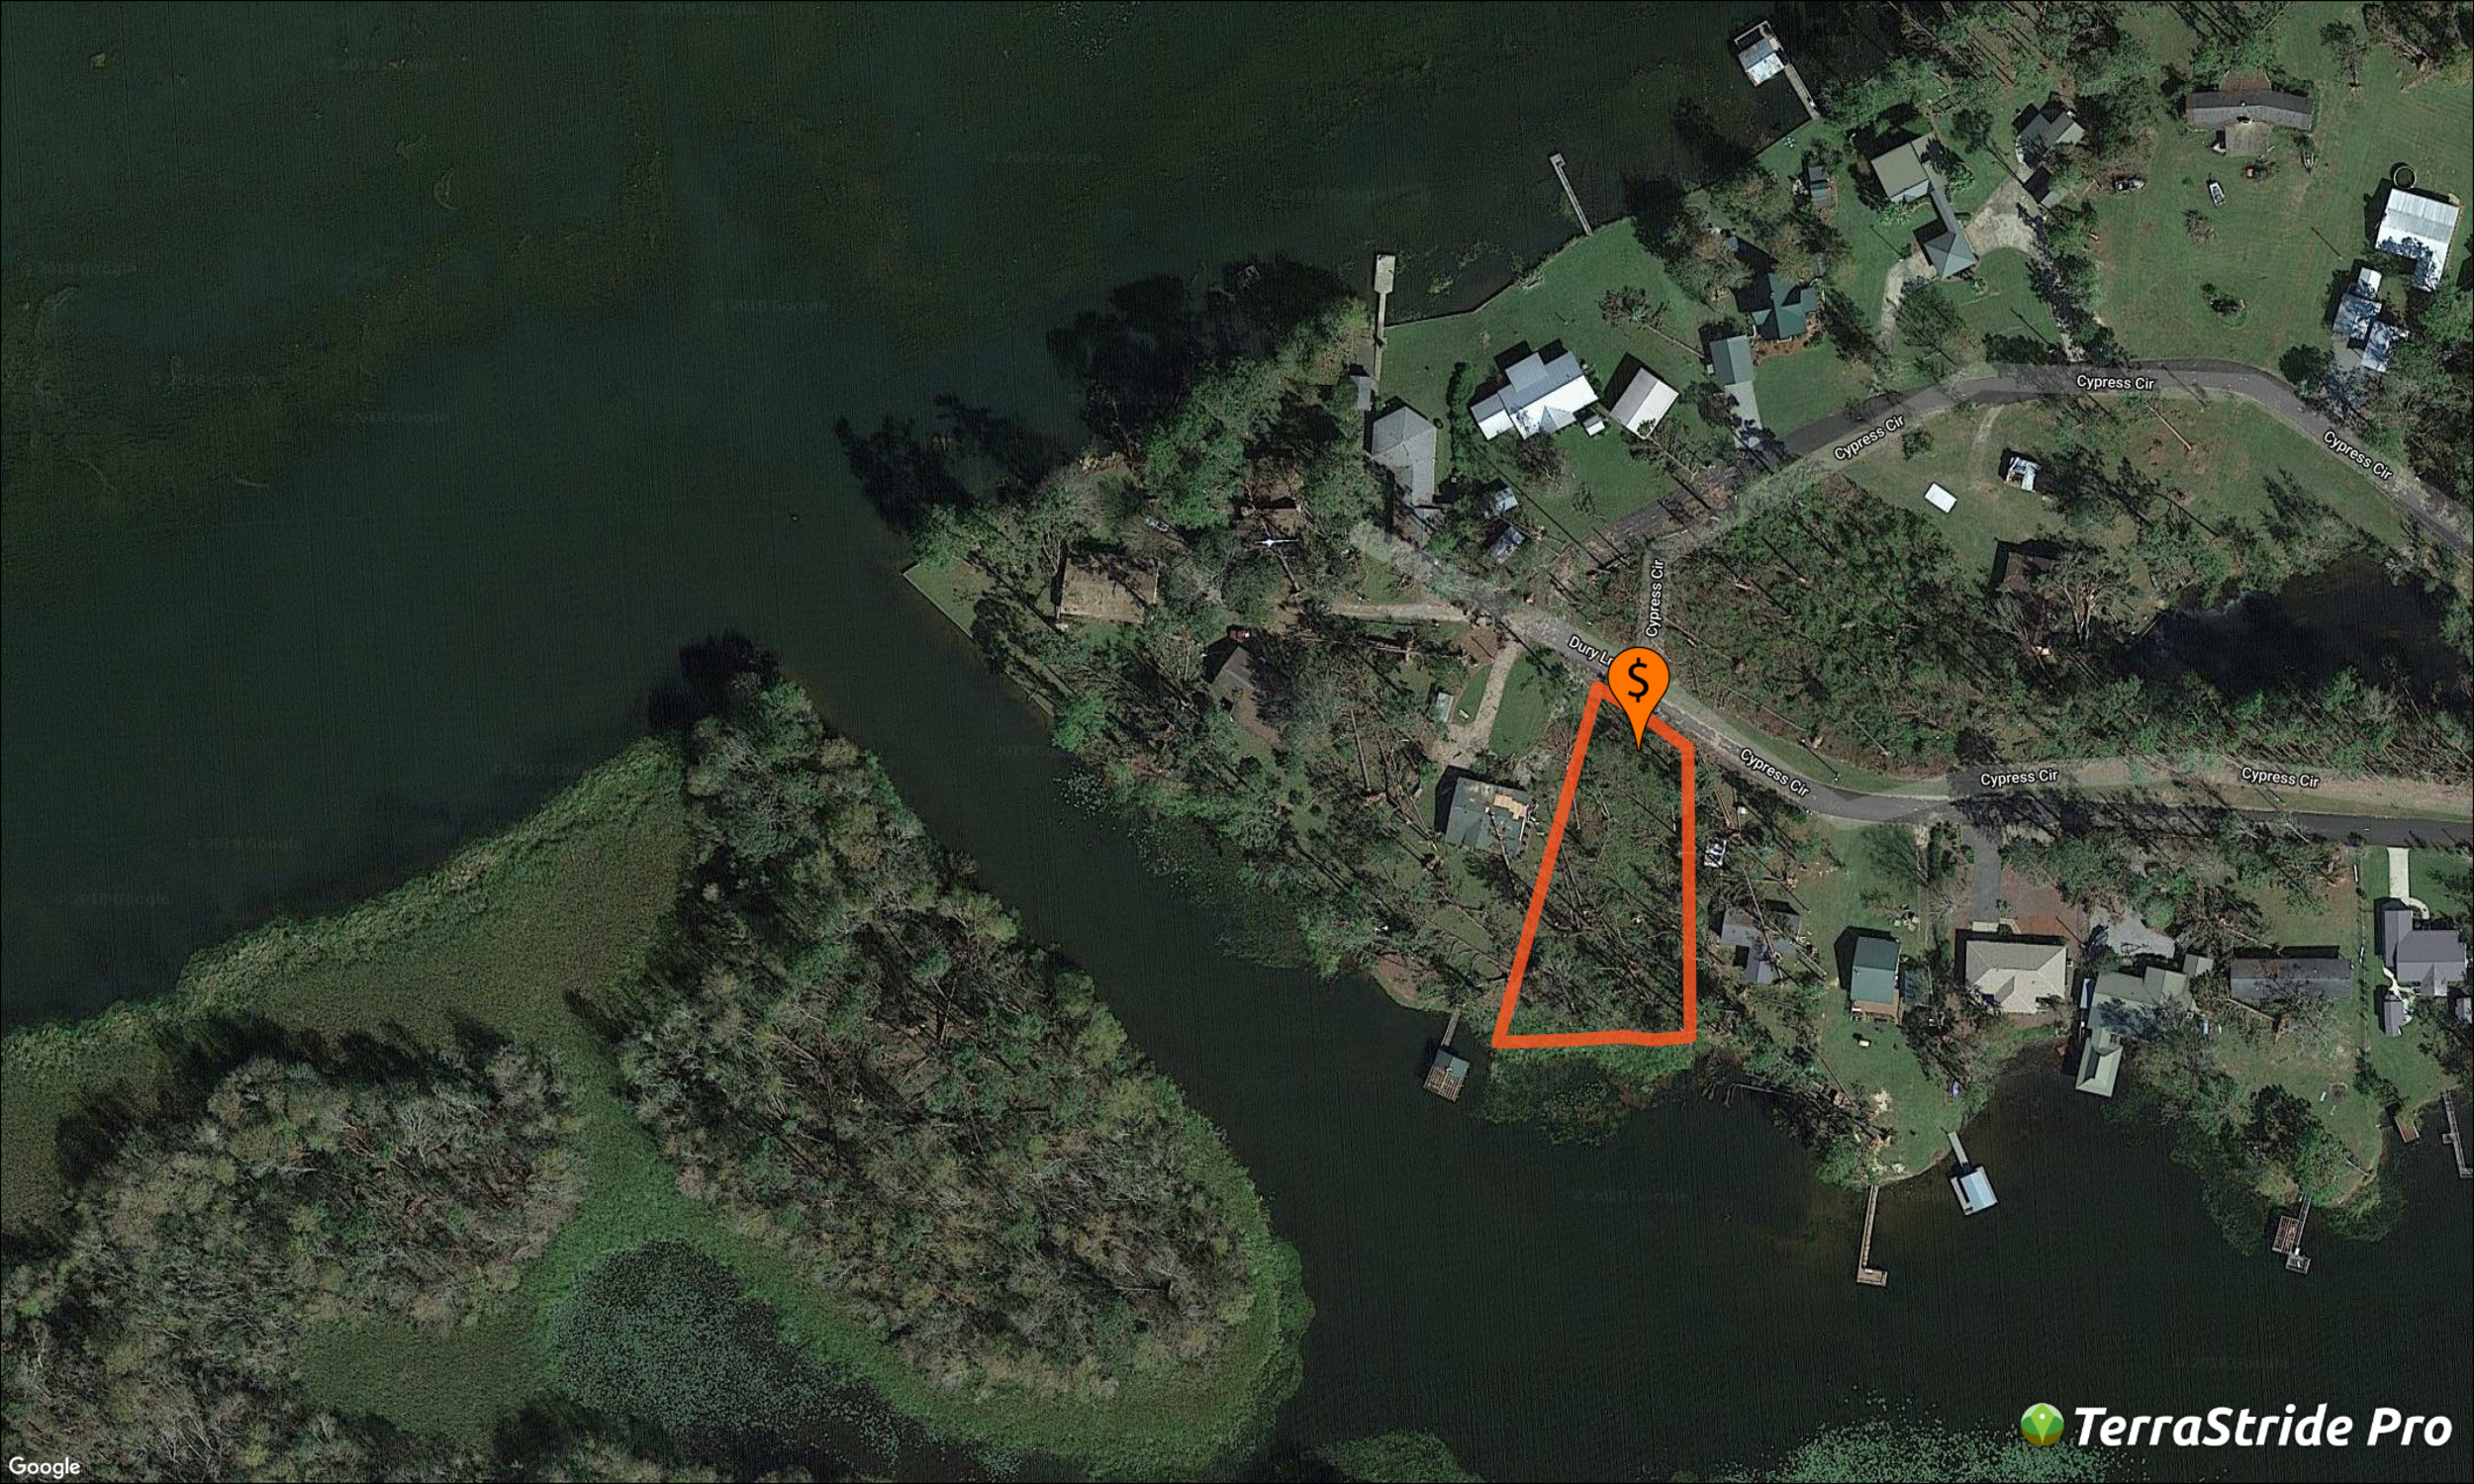 3riversrealty,threeriversrealty,waterfront,millsbrock,bainbridgegarealestate,vacant land for sale, lake seminole,odum.png